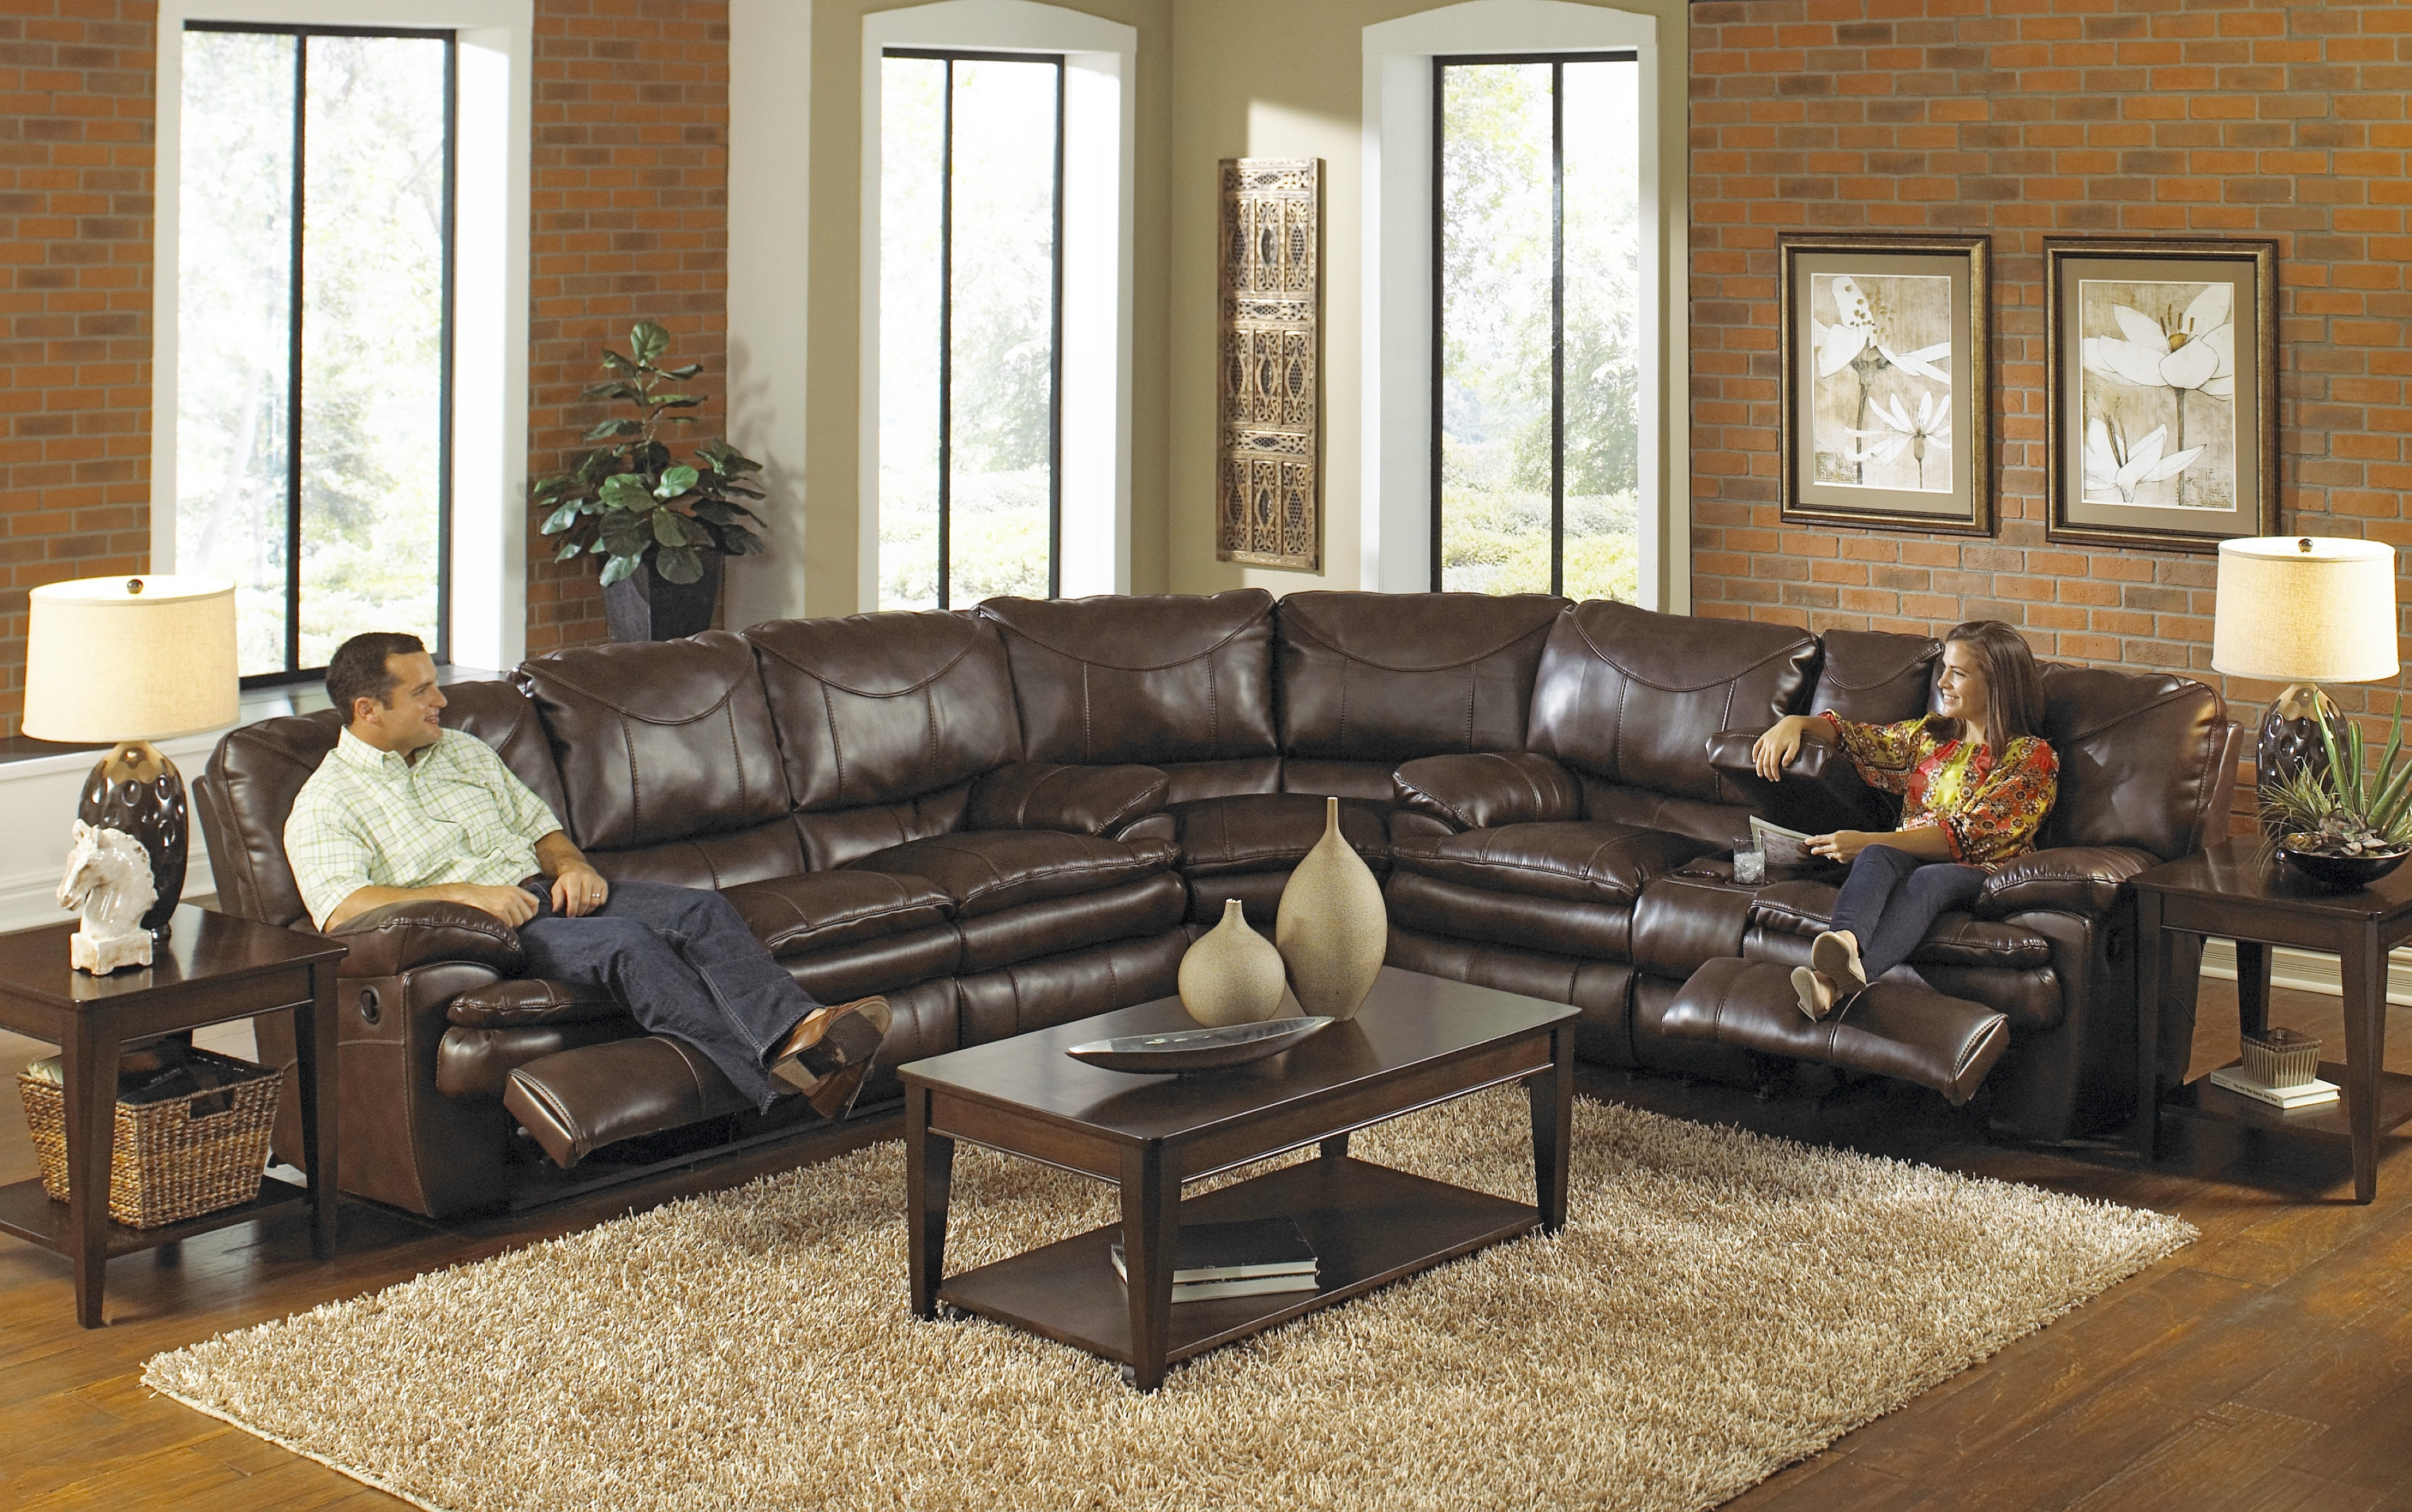 Delivered Sofa With Chaise And Recliner Buy Large Sectional Sofas For Leather Recliner Sectional Sofas (Image 4 of 10)